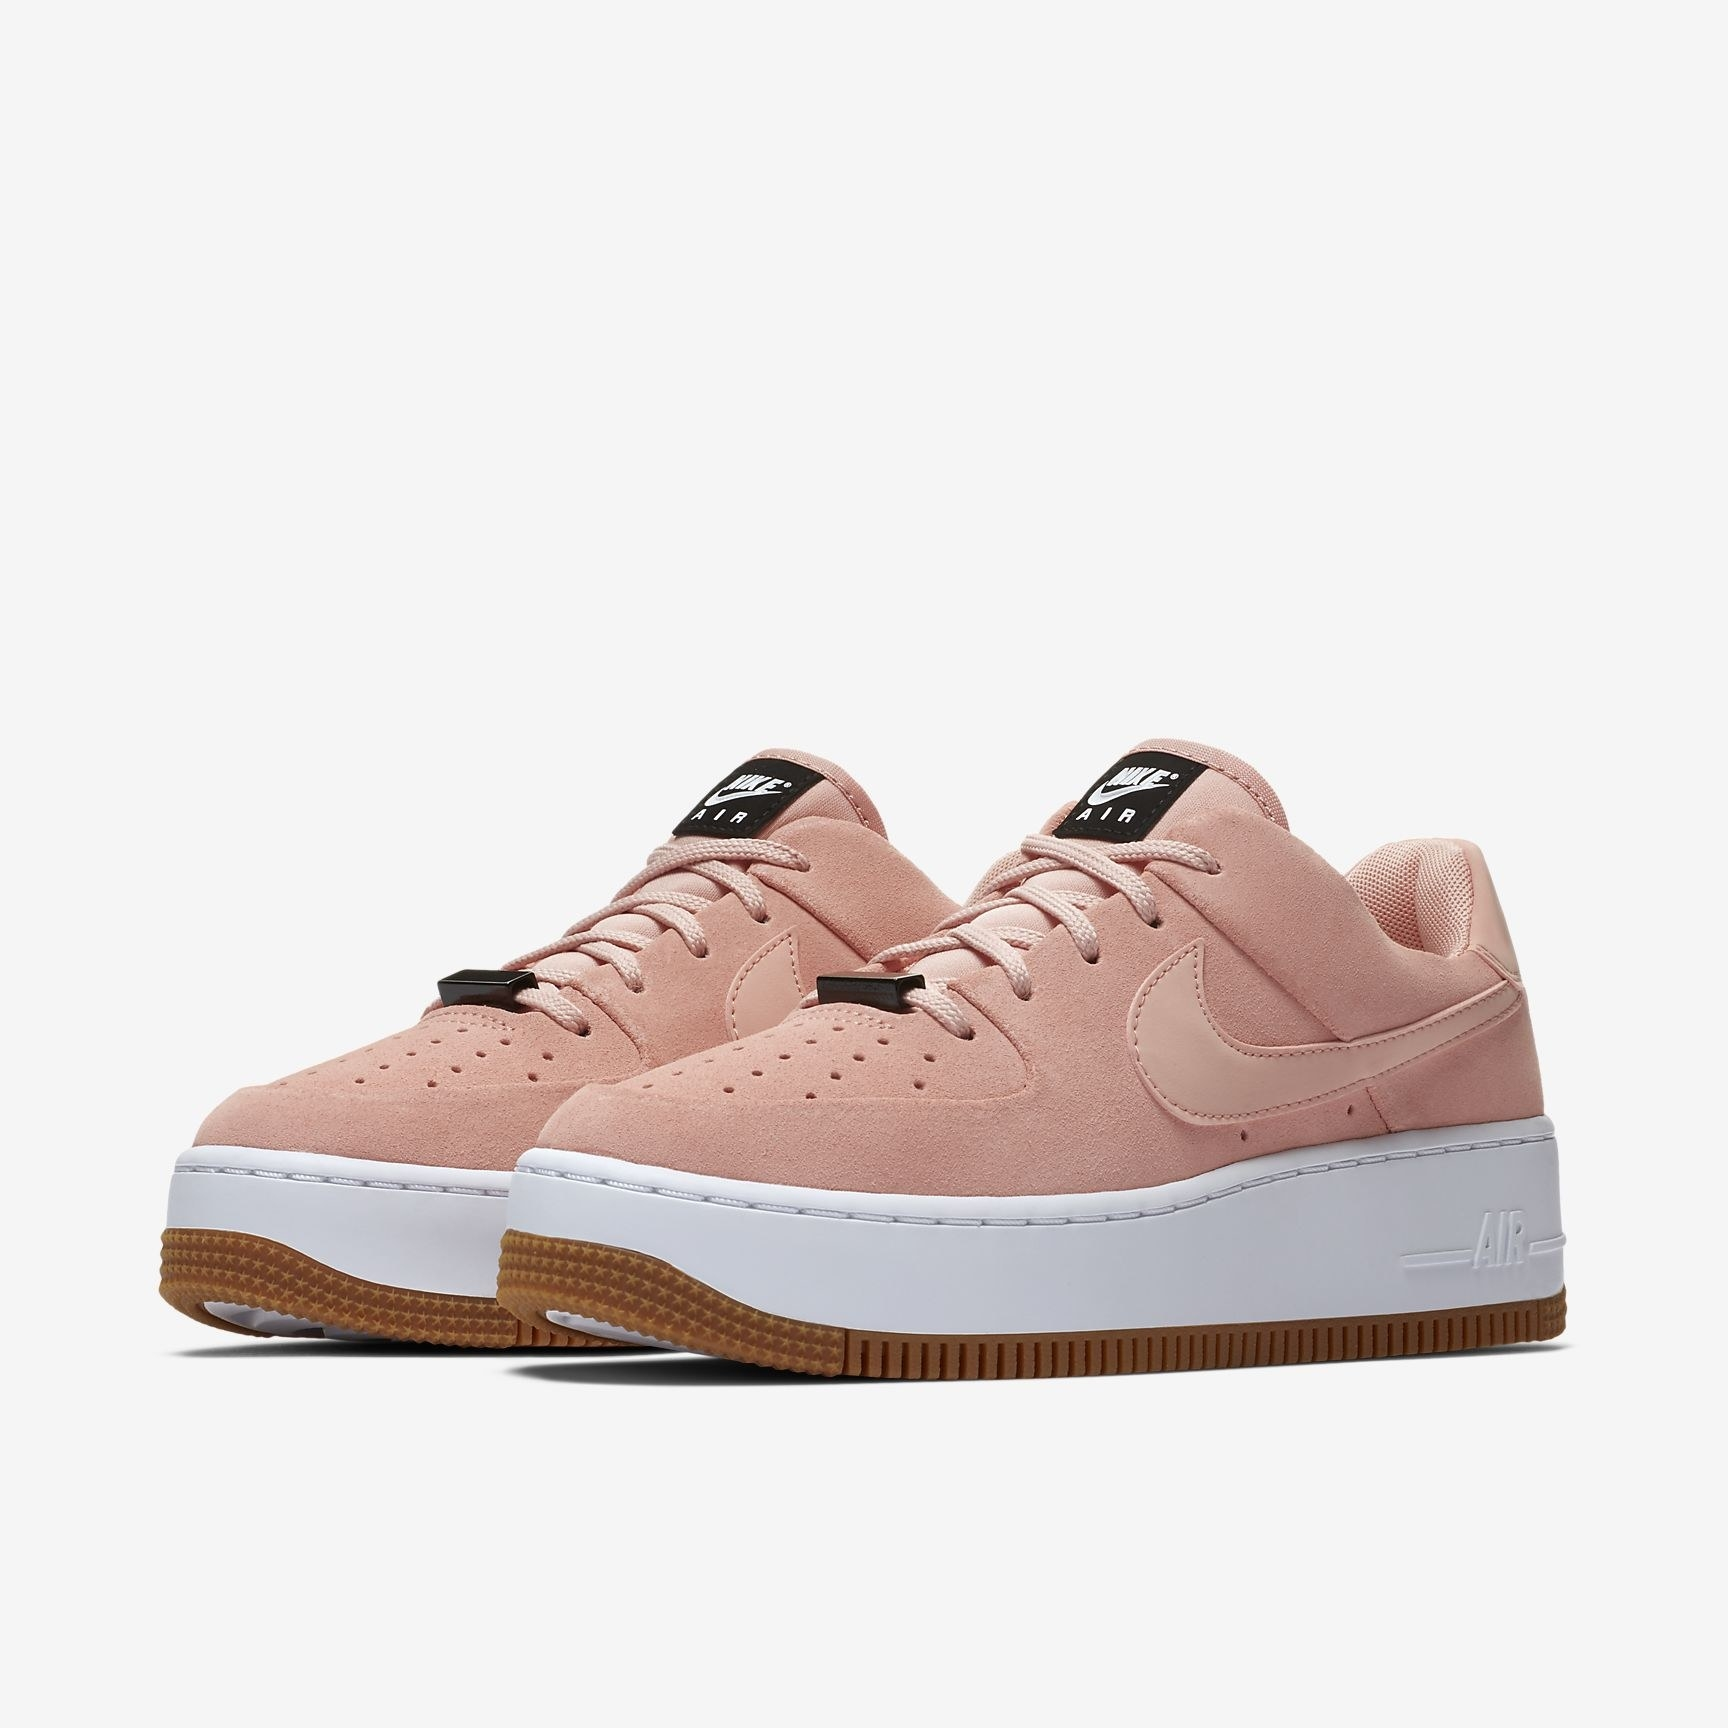 Tons Of Nike Shoes Are 25% Off Right